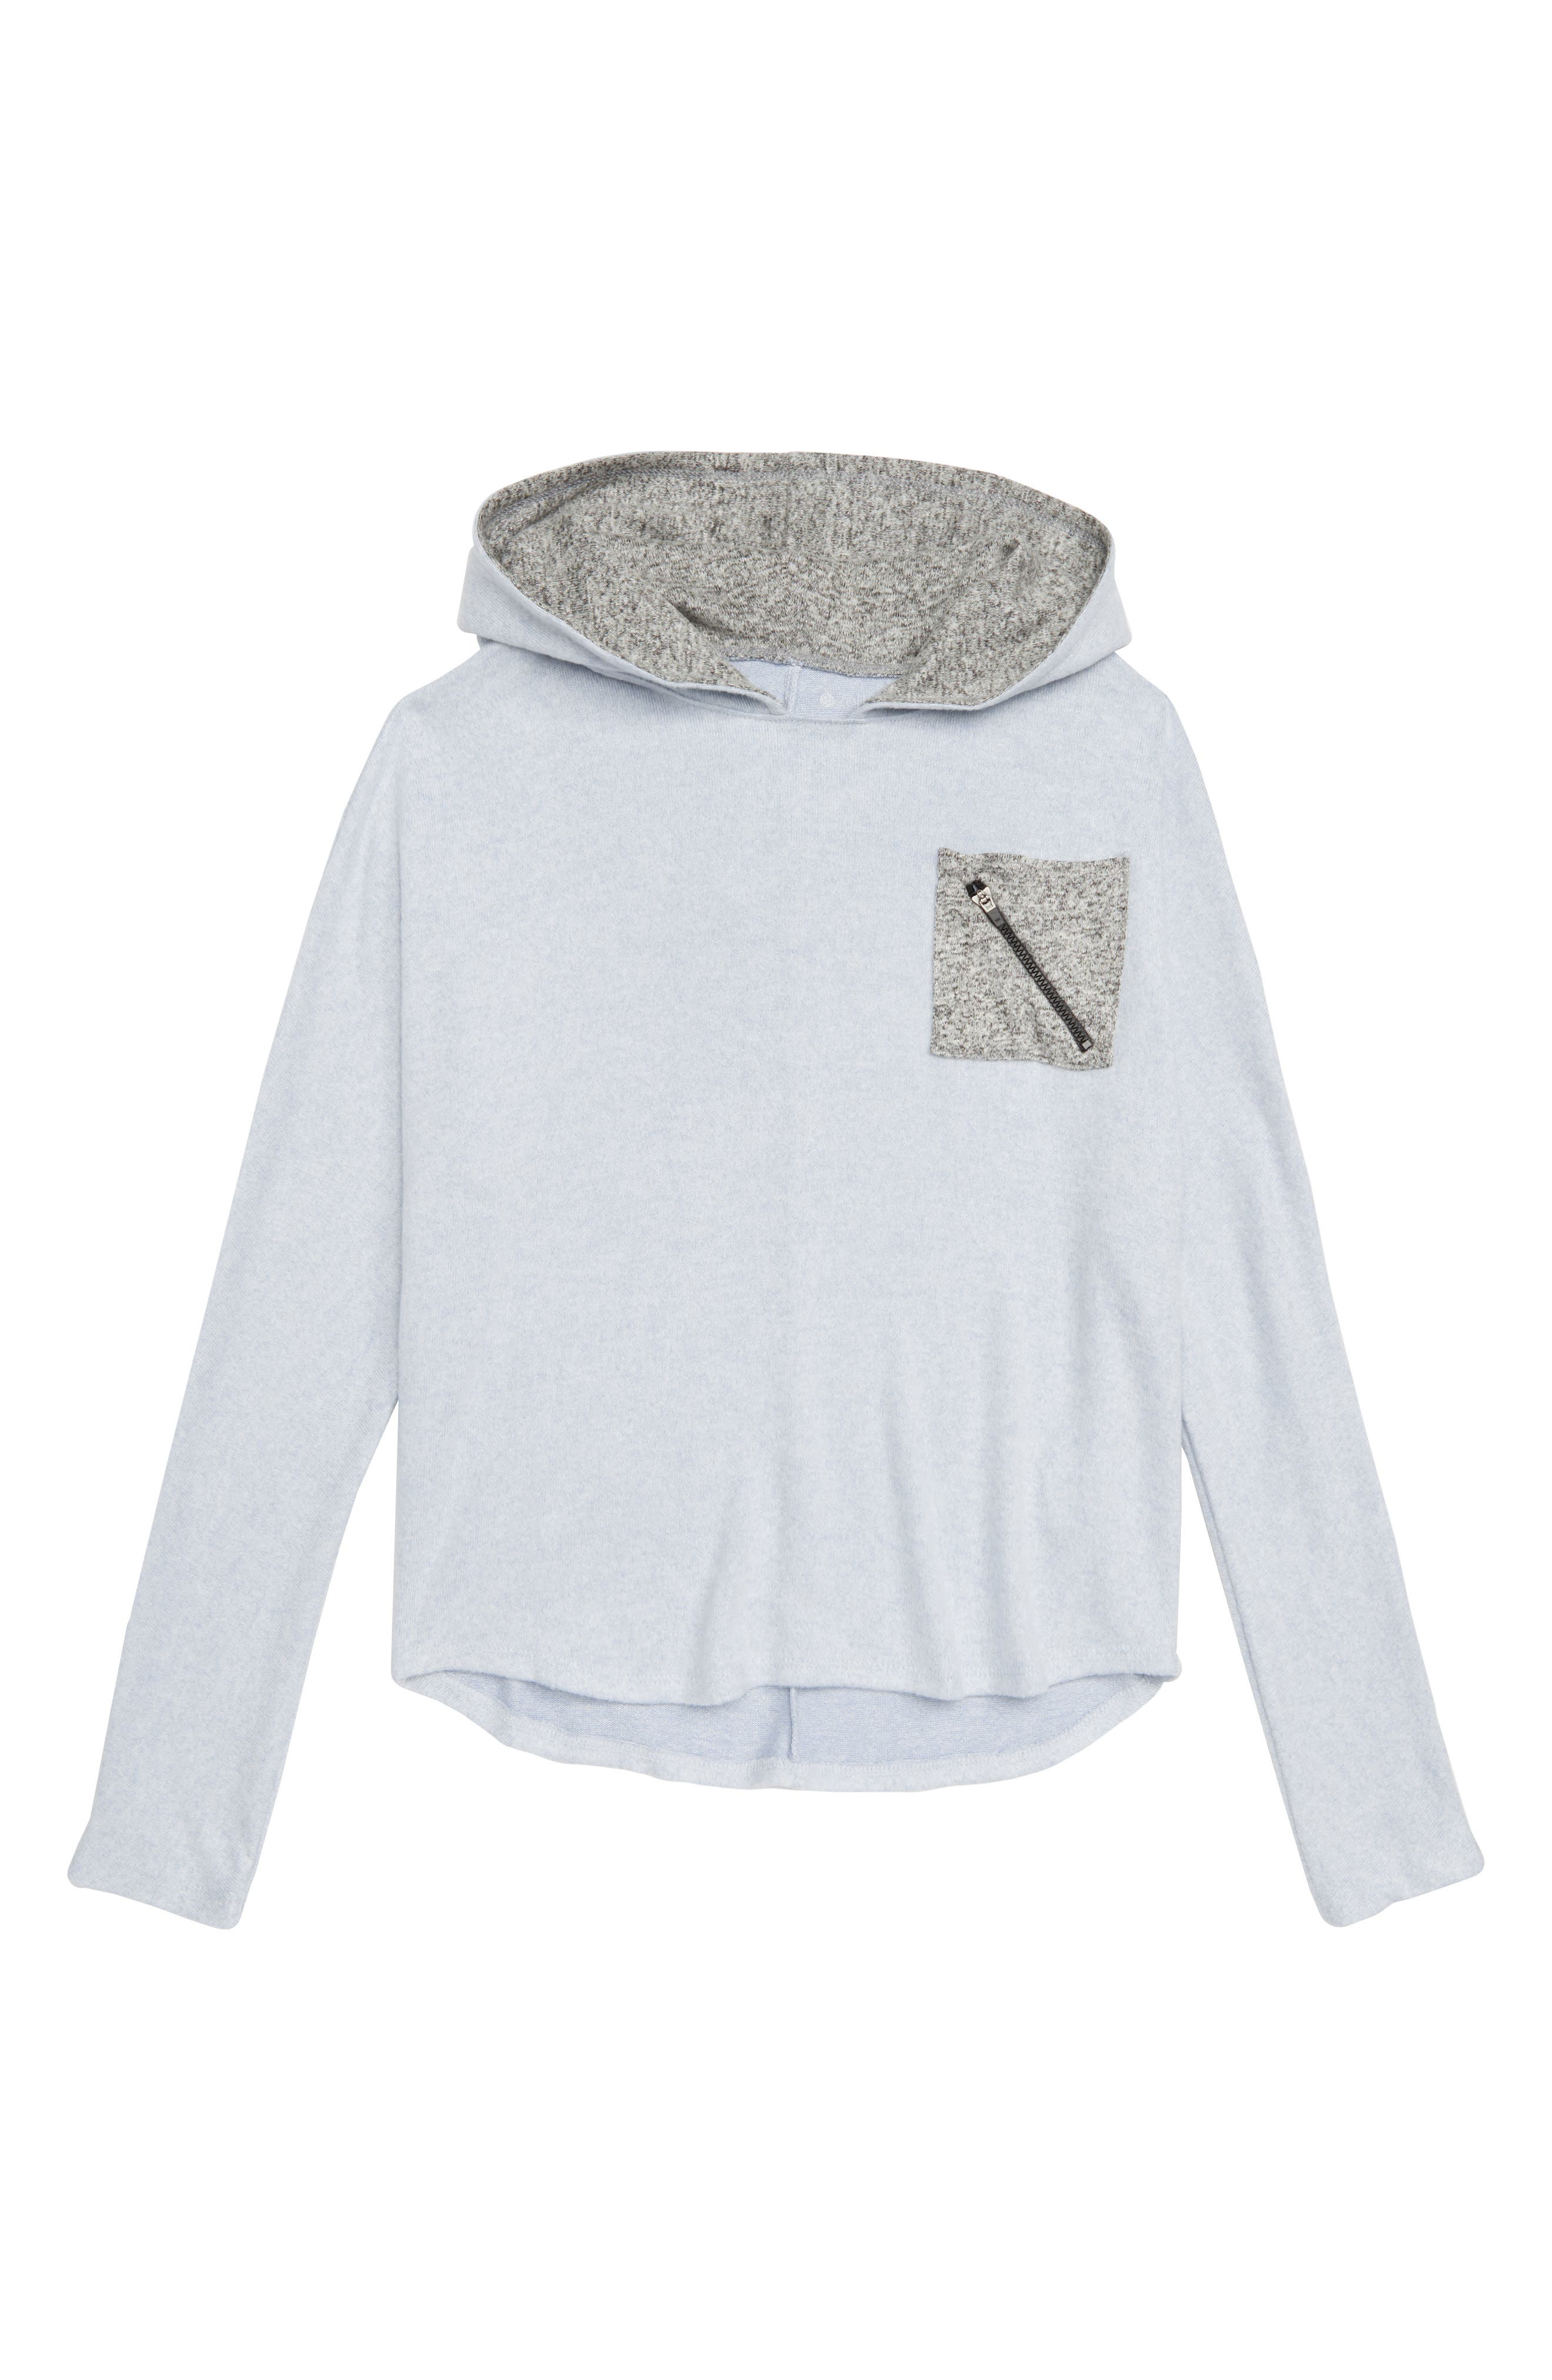 Contrast Pocket Hooded Pullover,                         Main,                         color, 420